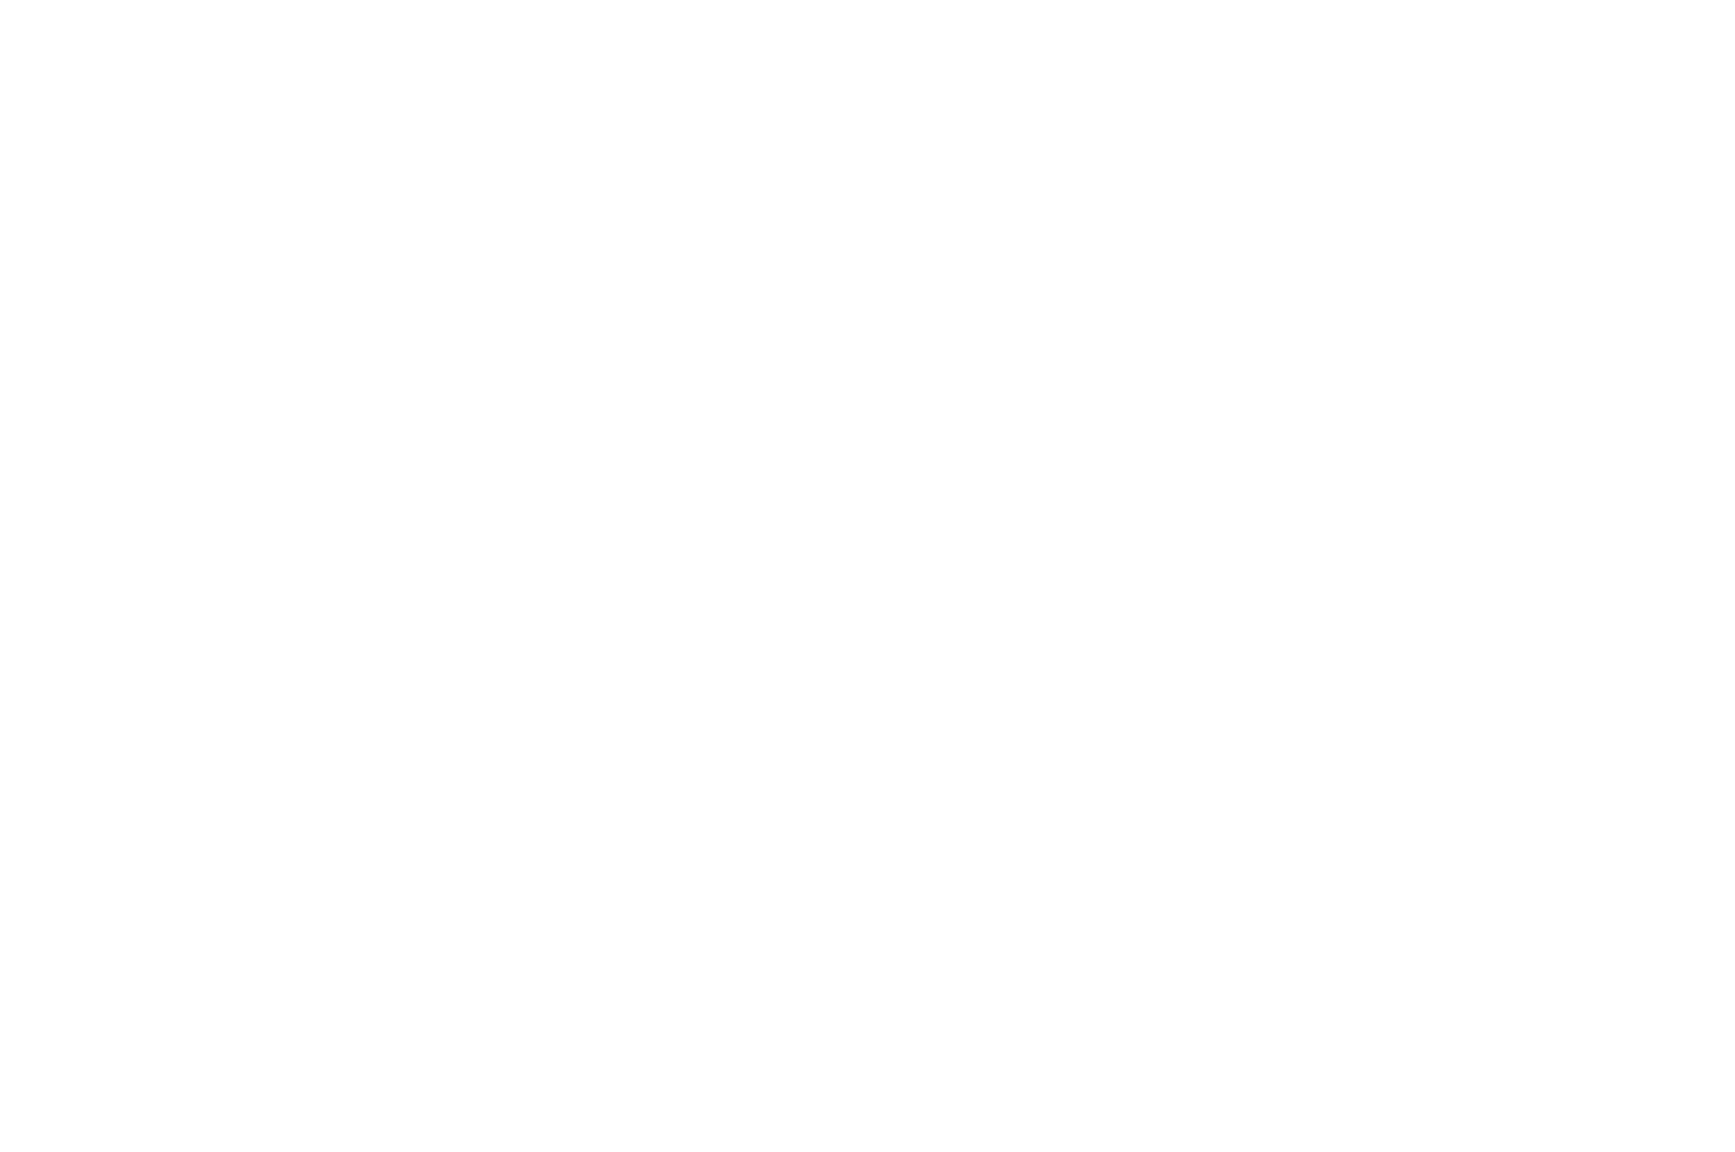 OFFICIAL SELECTION - Roma Cinema DOC - 2016